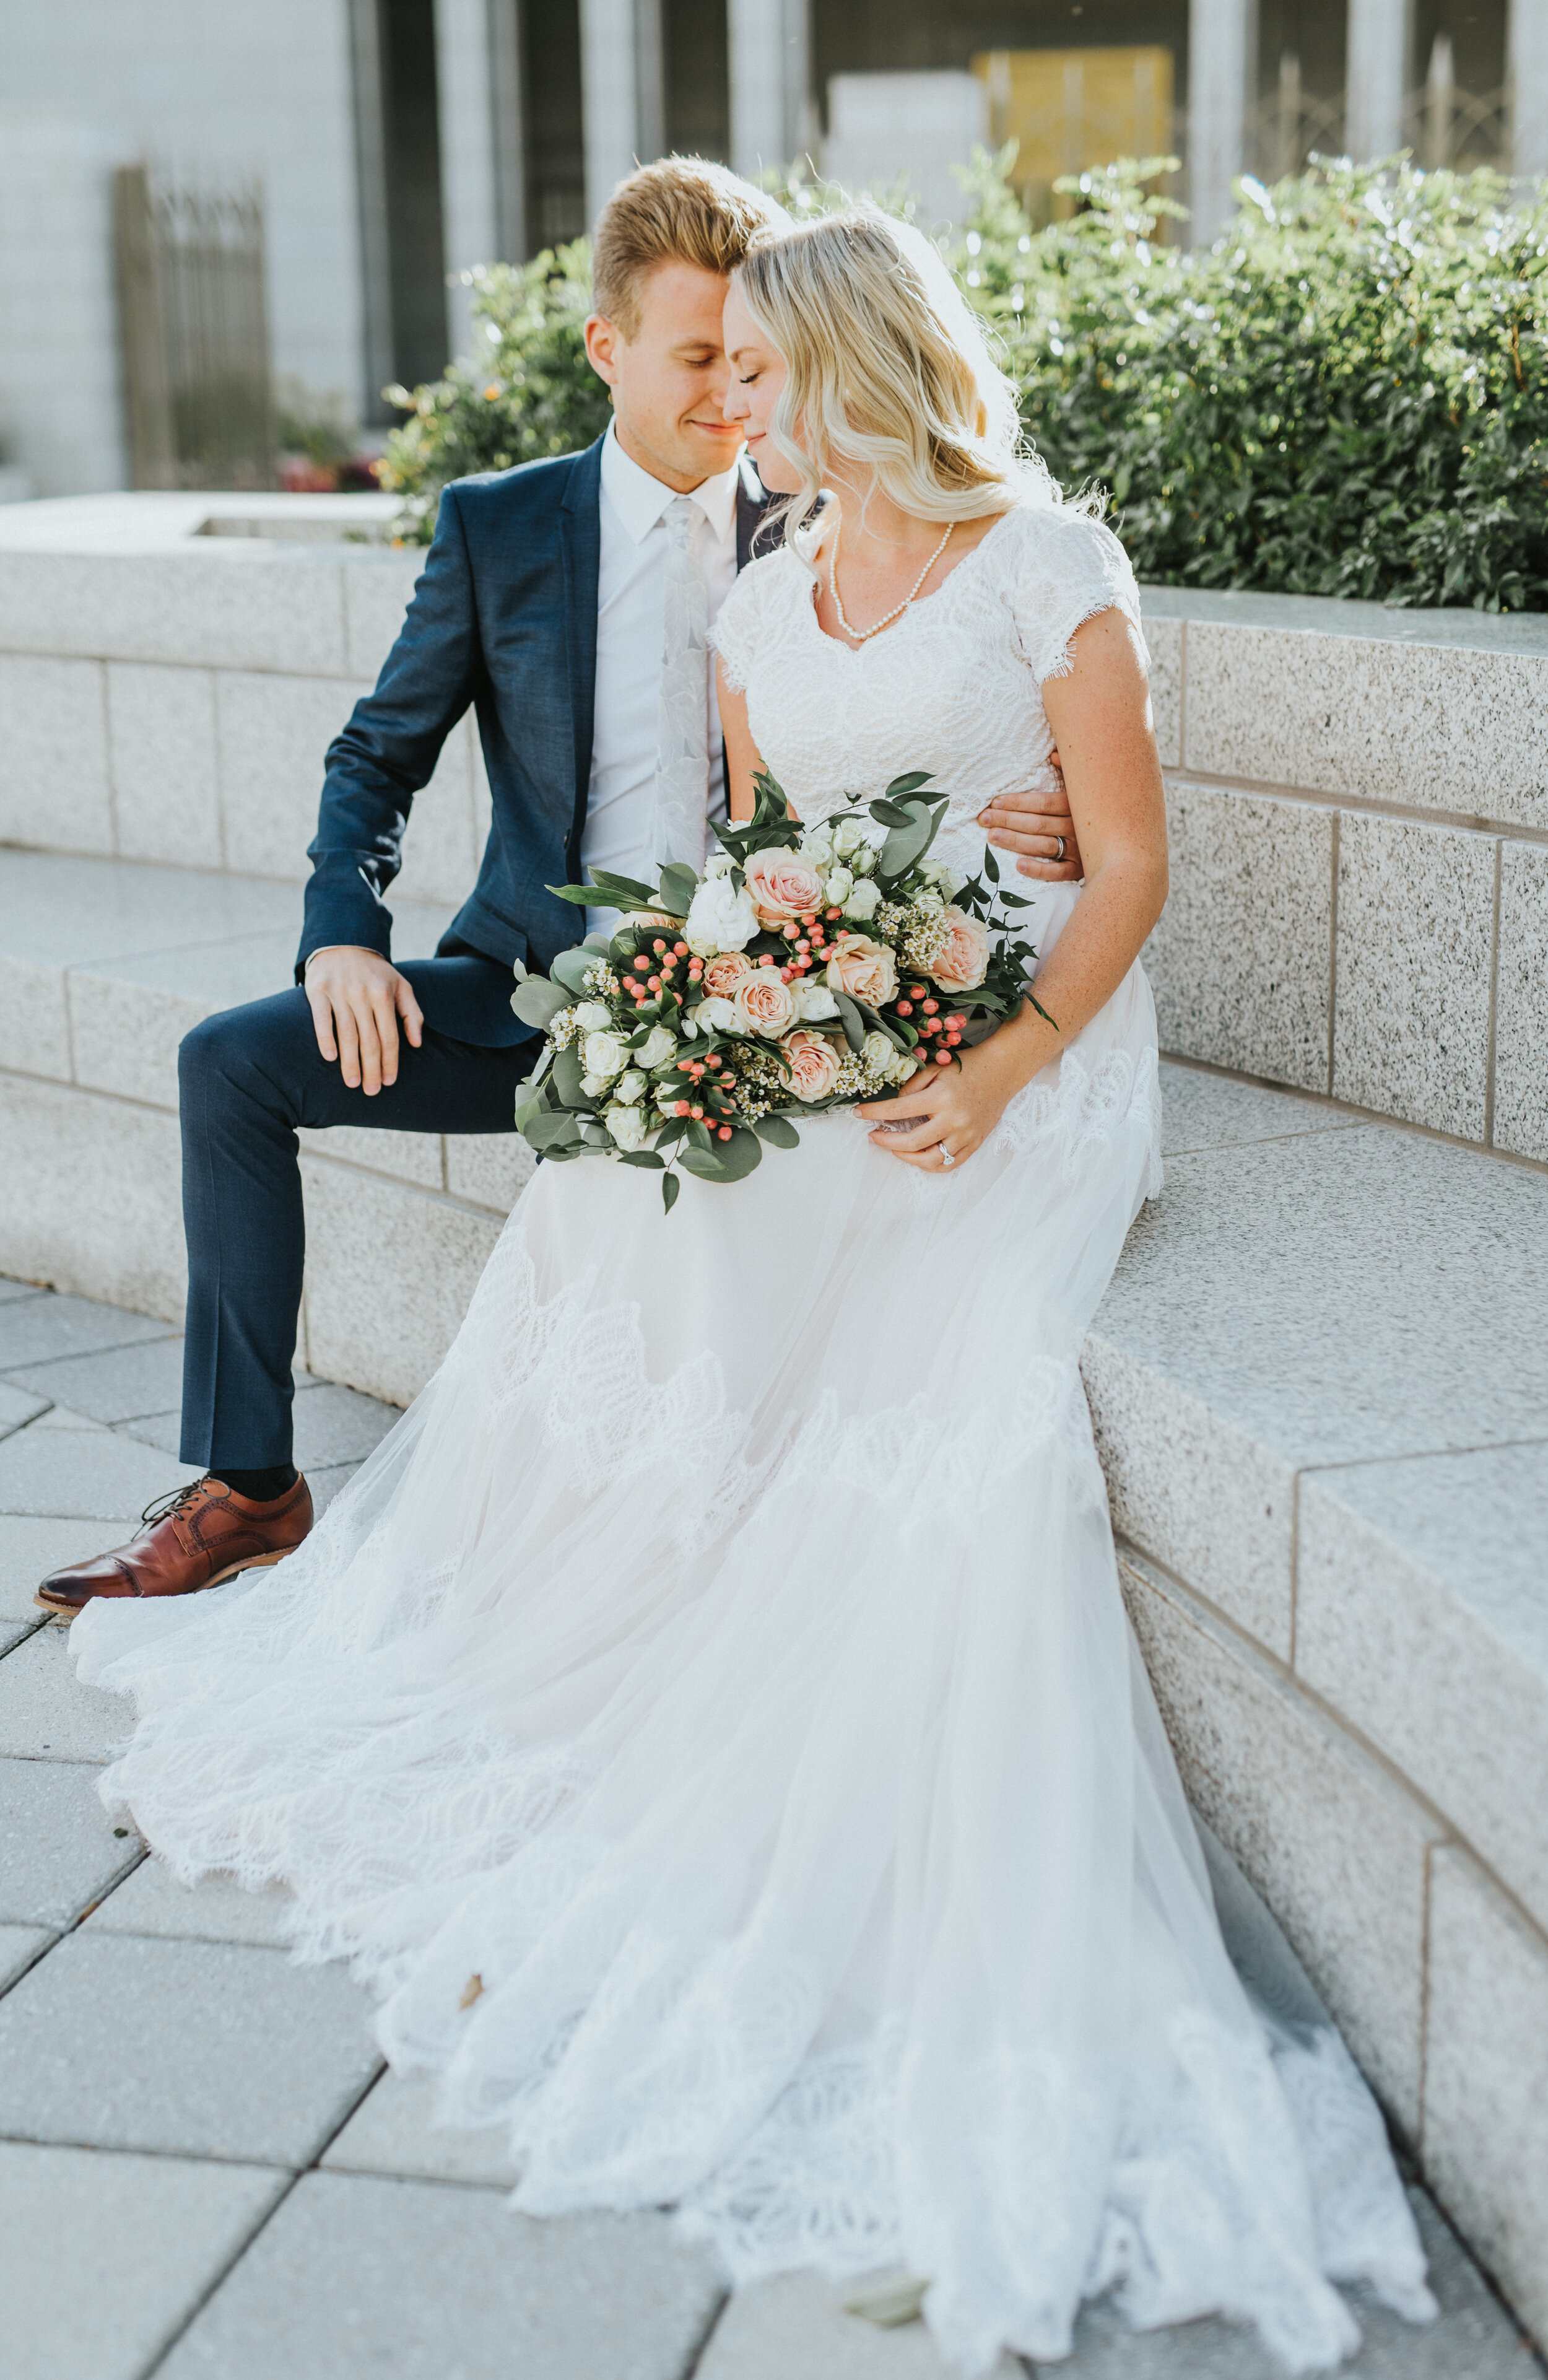 couple_sitting_on_bench_in_wedding_clothes.JPG